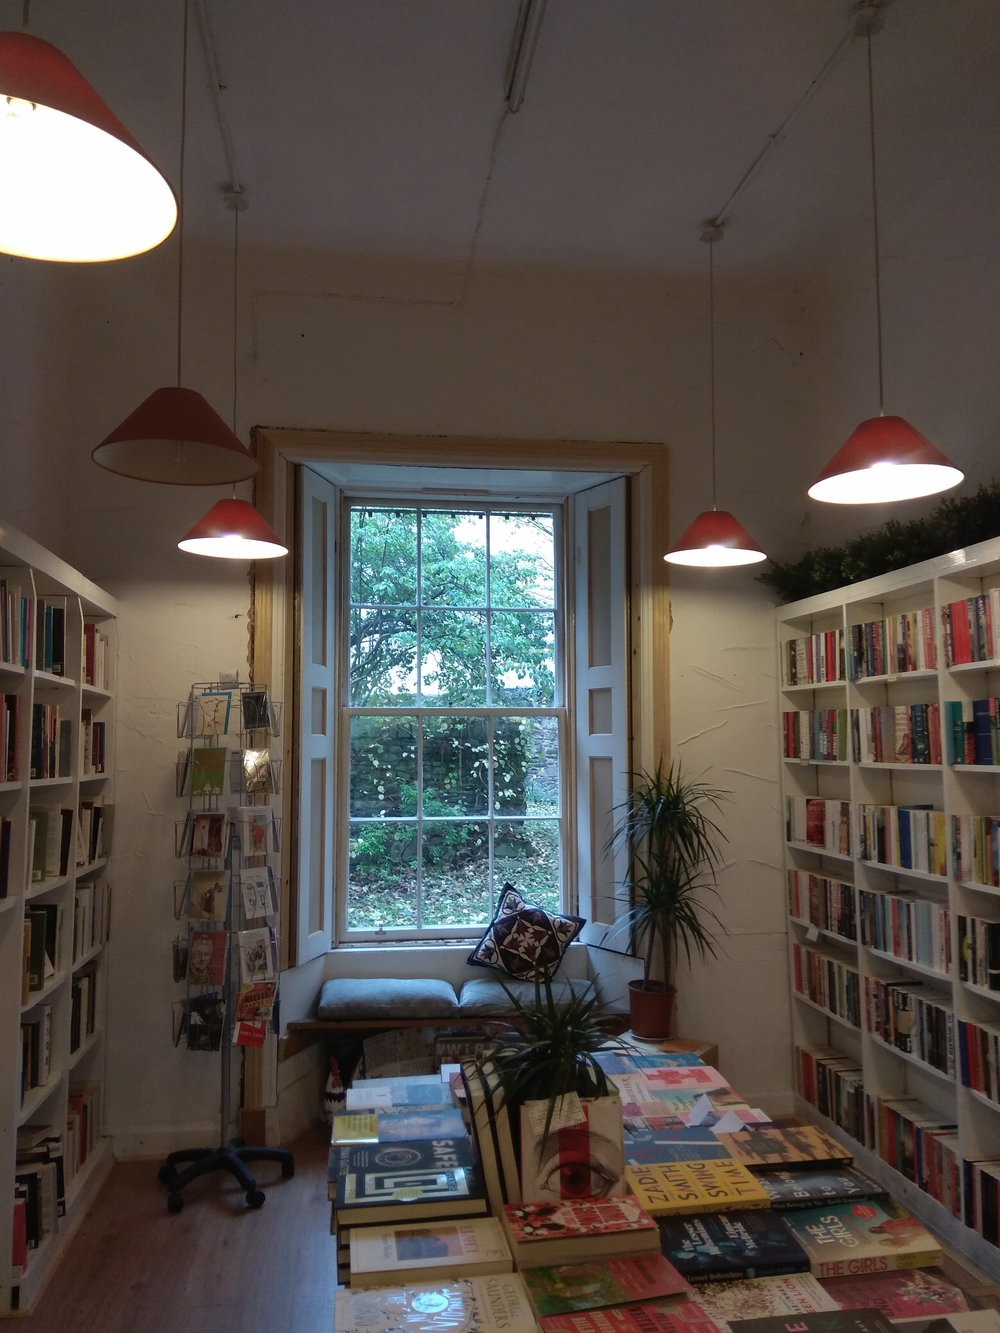 Lighthouse Bookshop interior.jpg